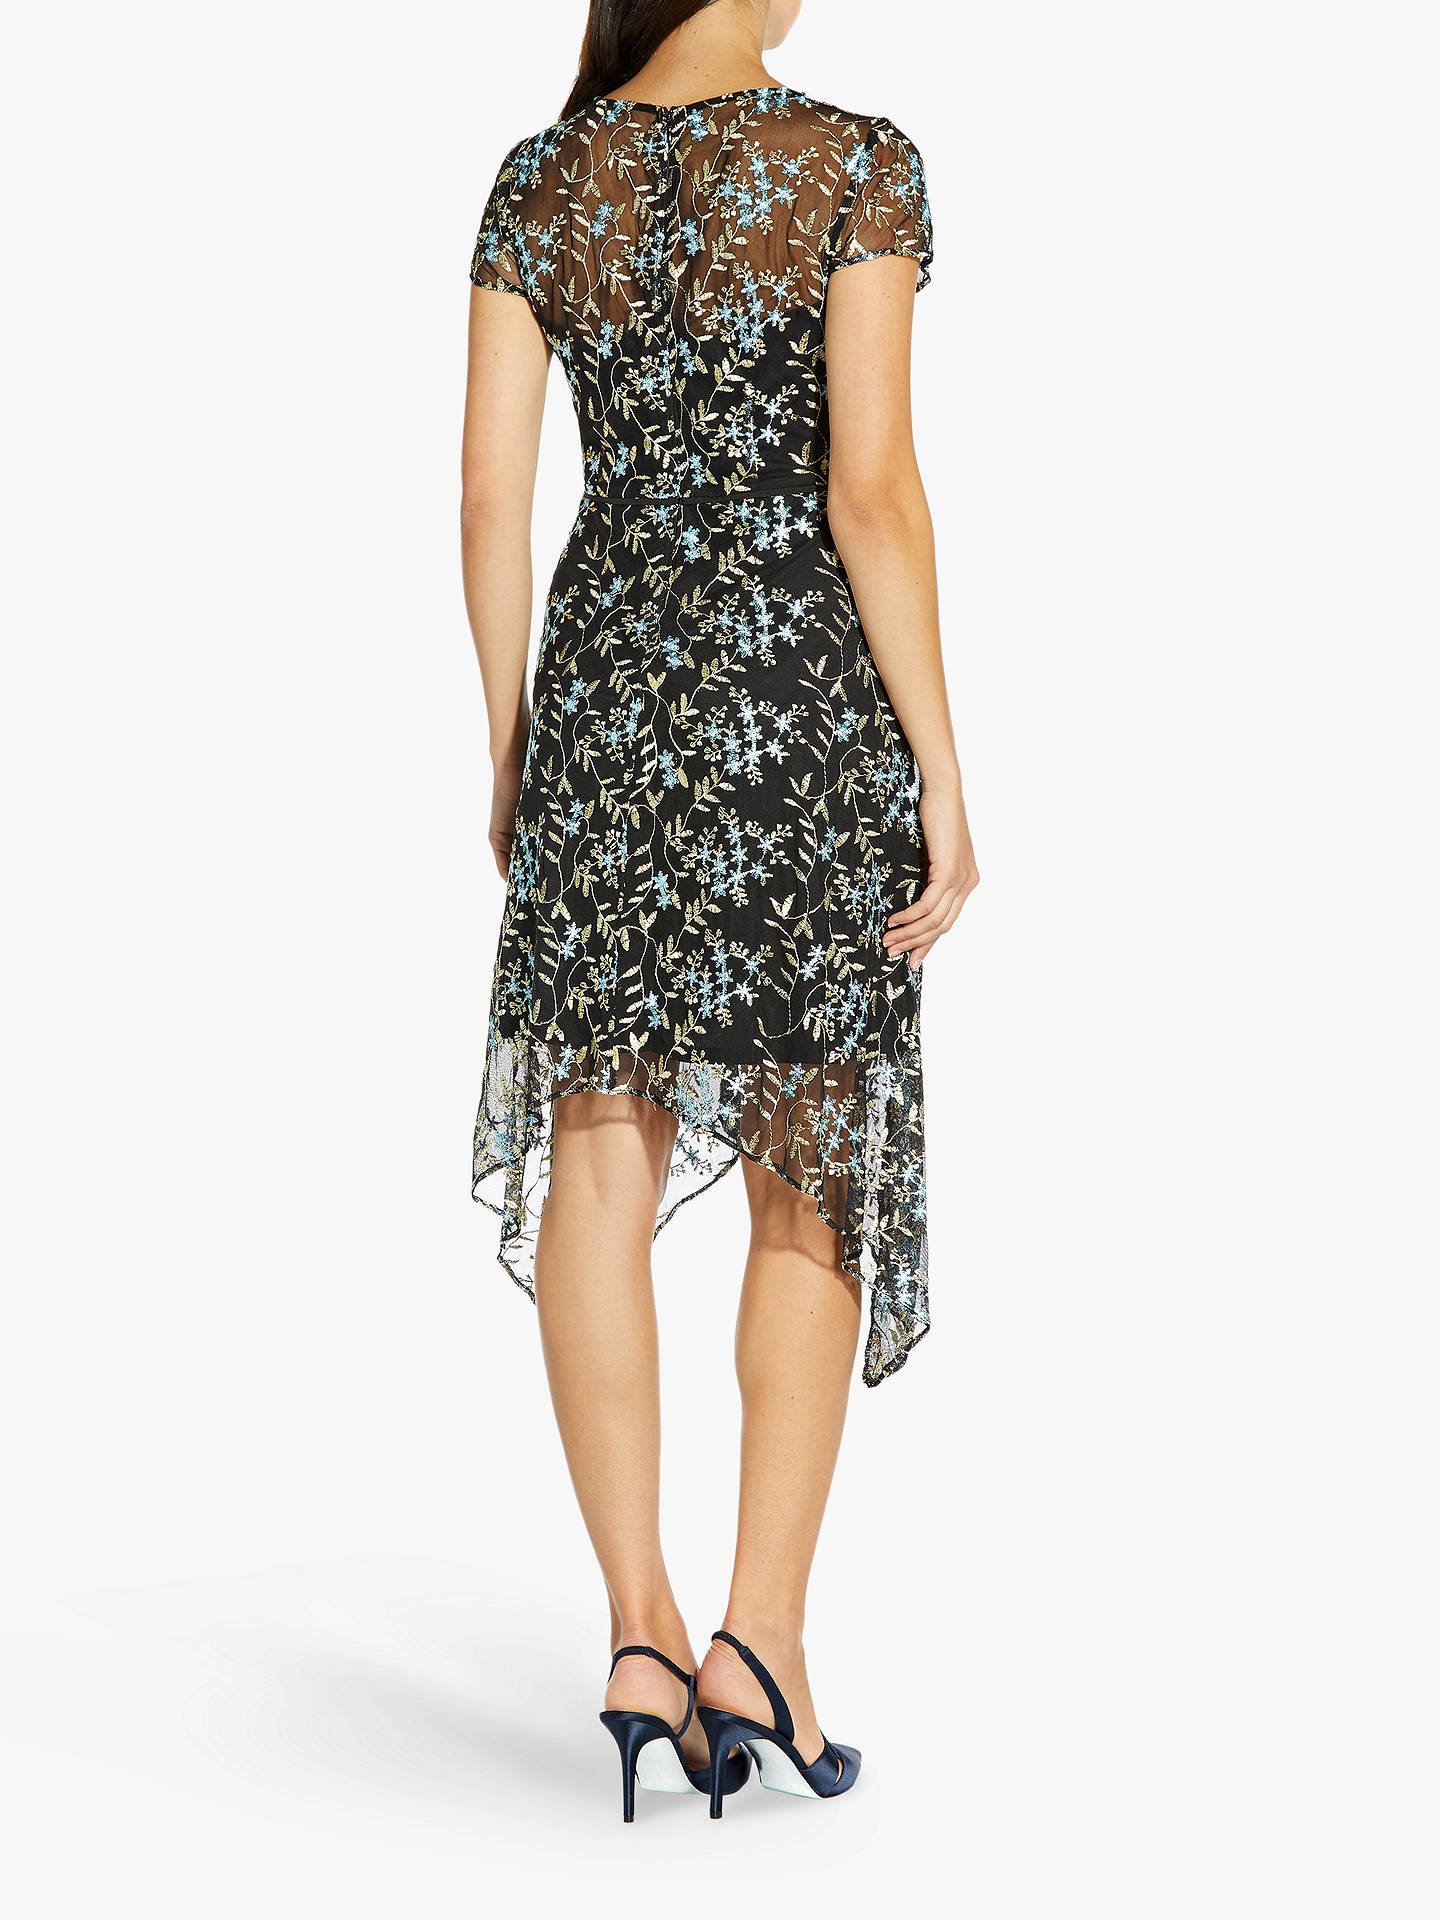 Buy Adrianna Papell Asymmetrical Floral Embroidered Midi Dress, Blue/Multi, 8 Online at johnlewis.com